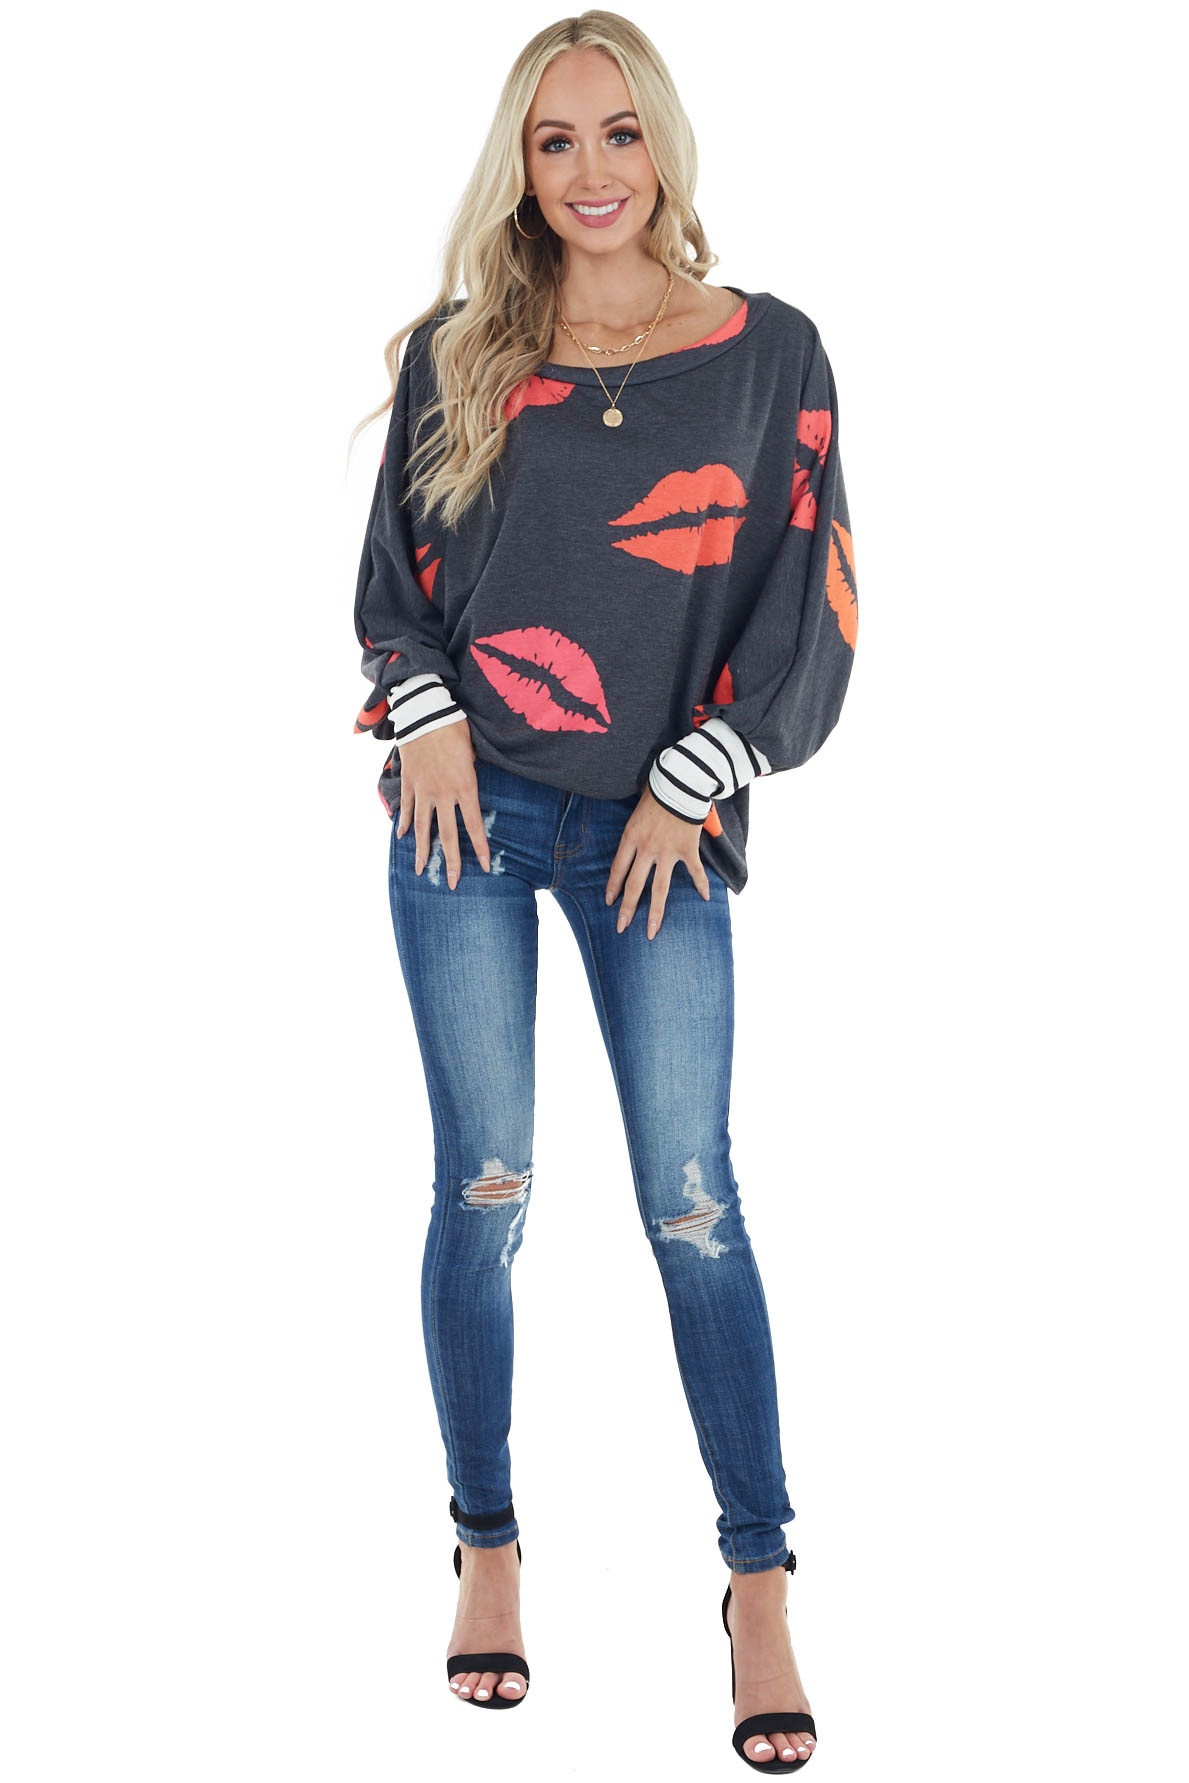 Charcoal Oversized Lip Print Top with Striped Cuff Details